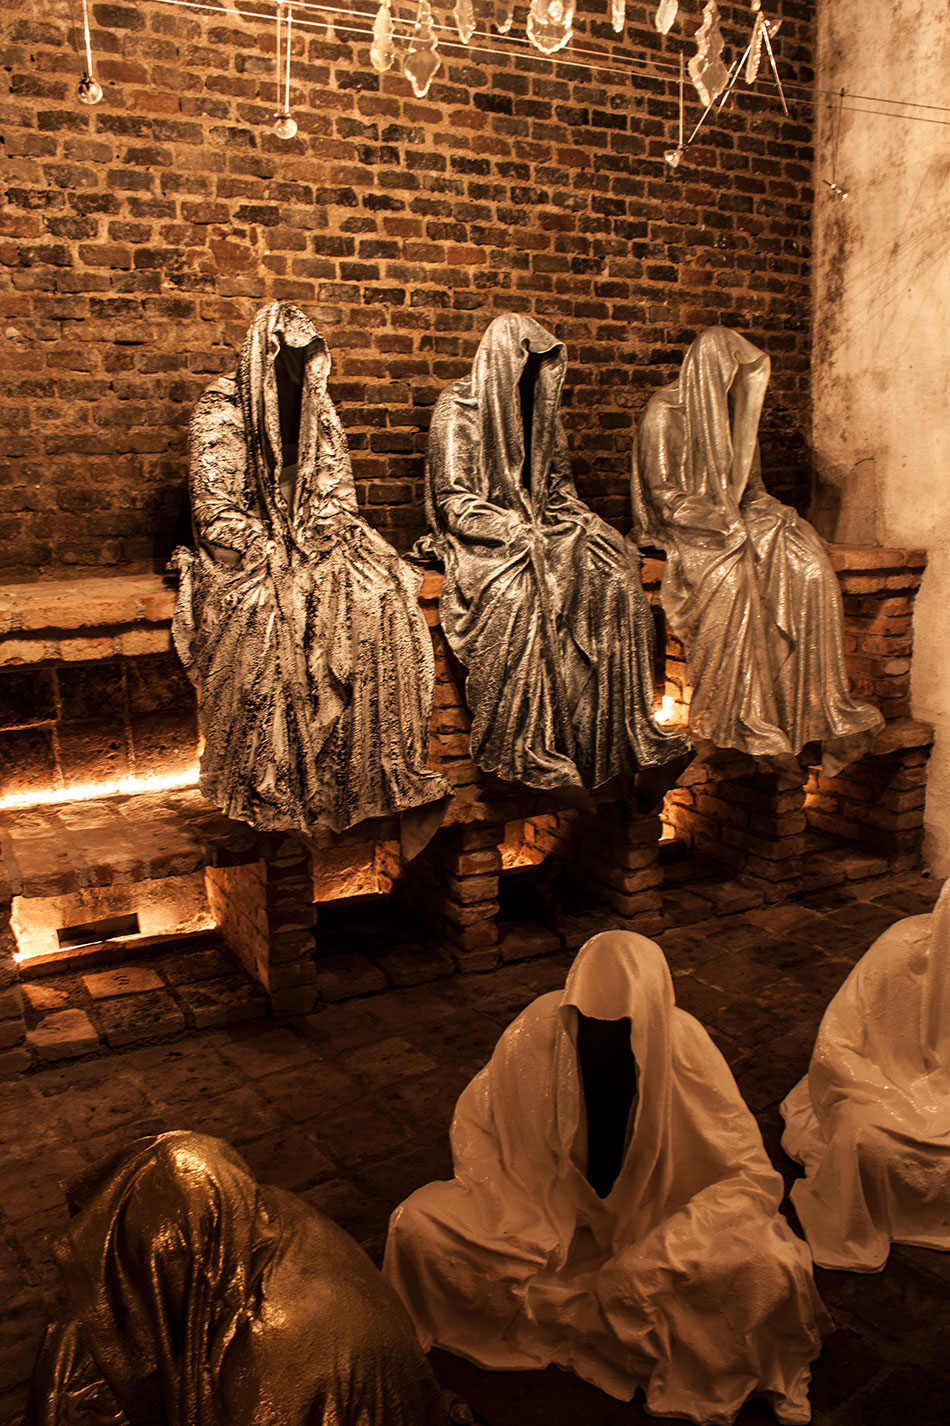 wine-cellar-galerie-artdealer--freller-guardians-of-time-manfred-kili-kielnhofer-contemporary-art-arts-light-design-sculpture-antique-show-statue-7921